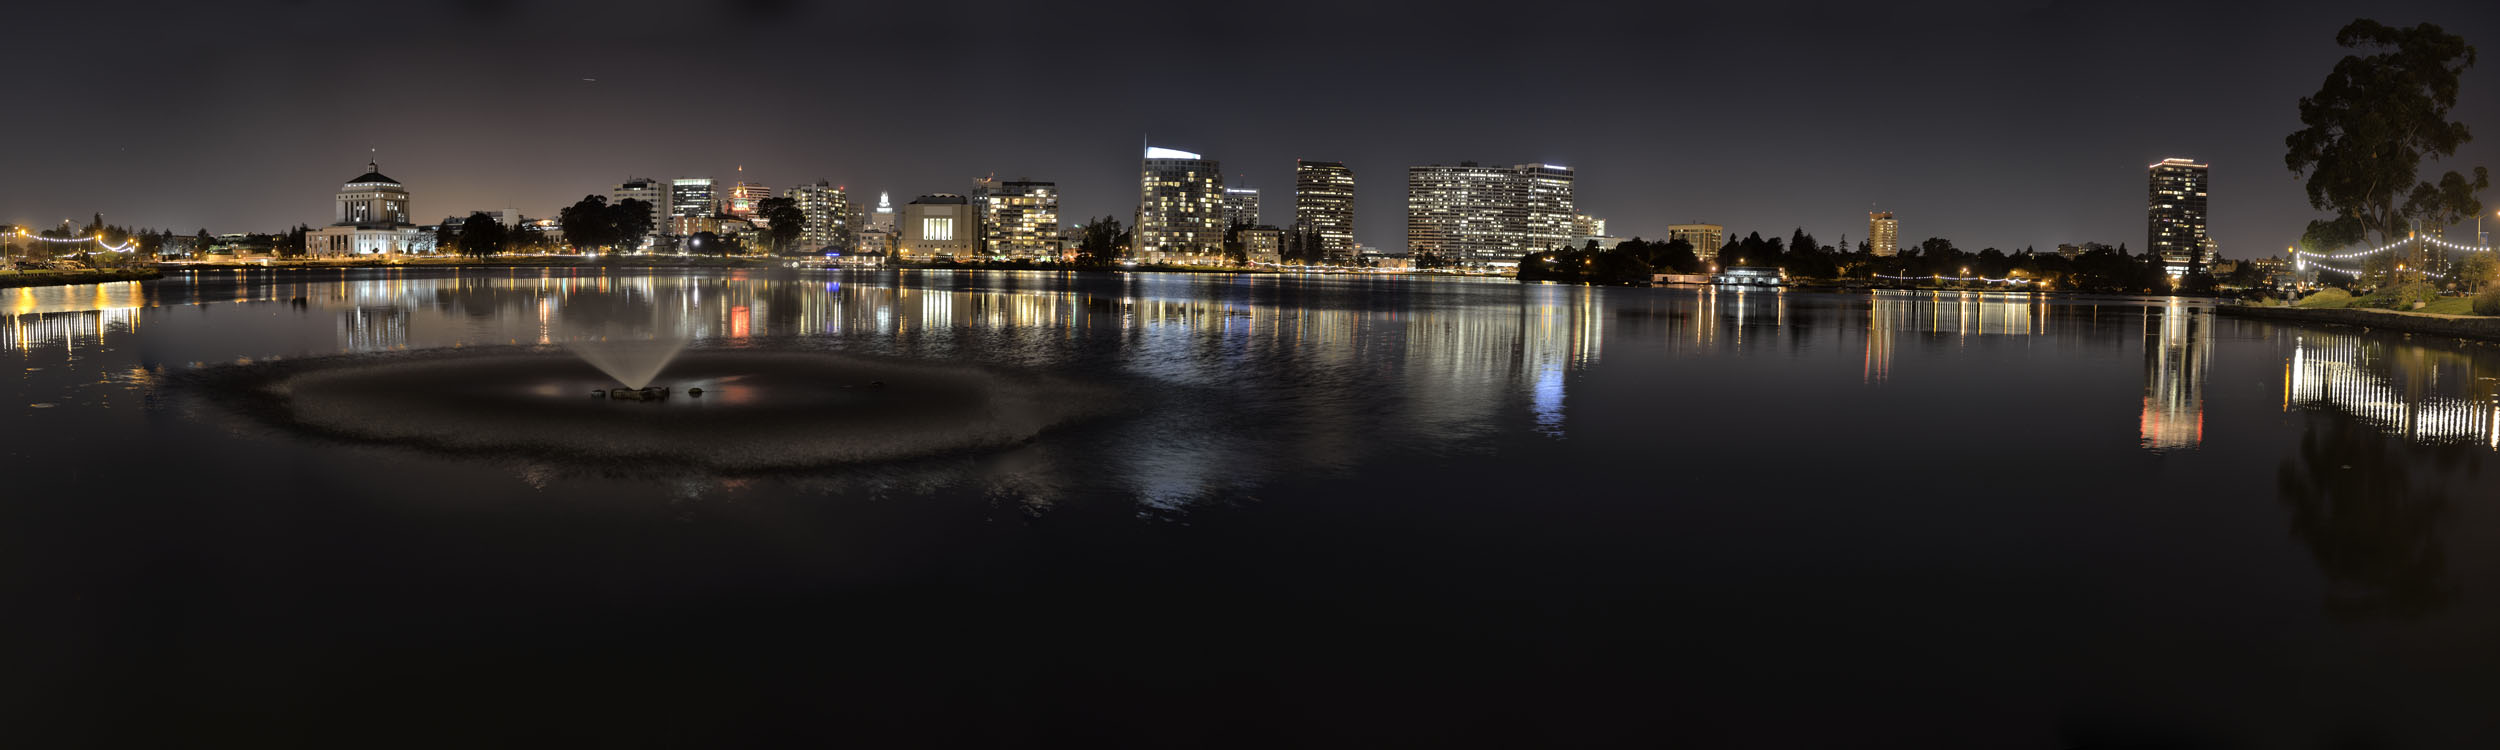 Oakland at Lake Merritt